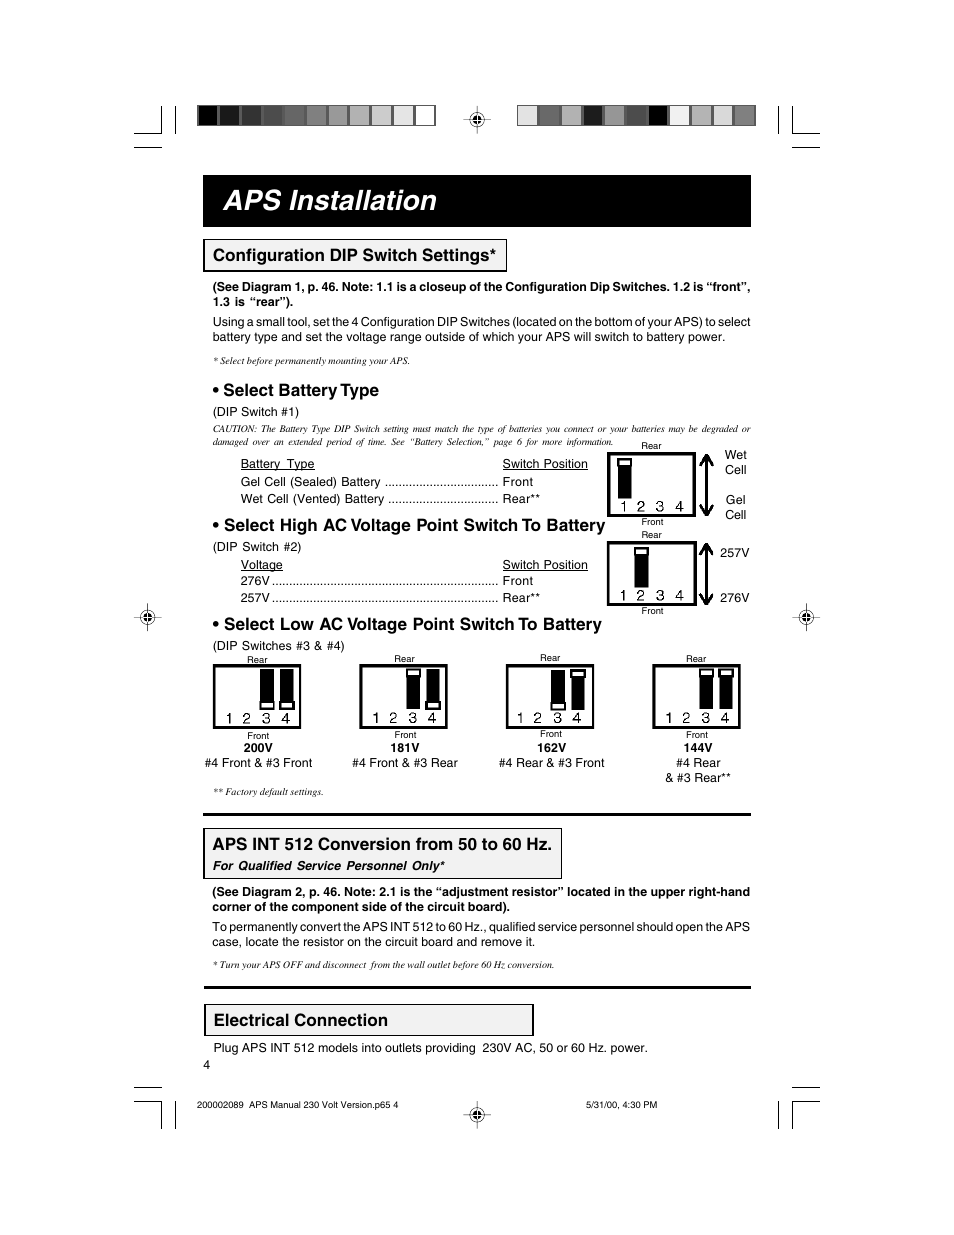 aps installation electrical connection configuration dip switch rh manualsdir com Instruction Manual Book Instruction Manual Book